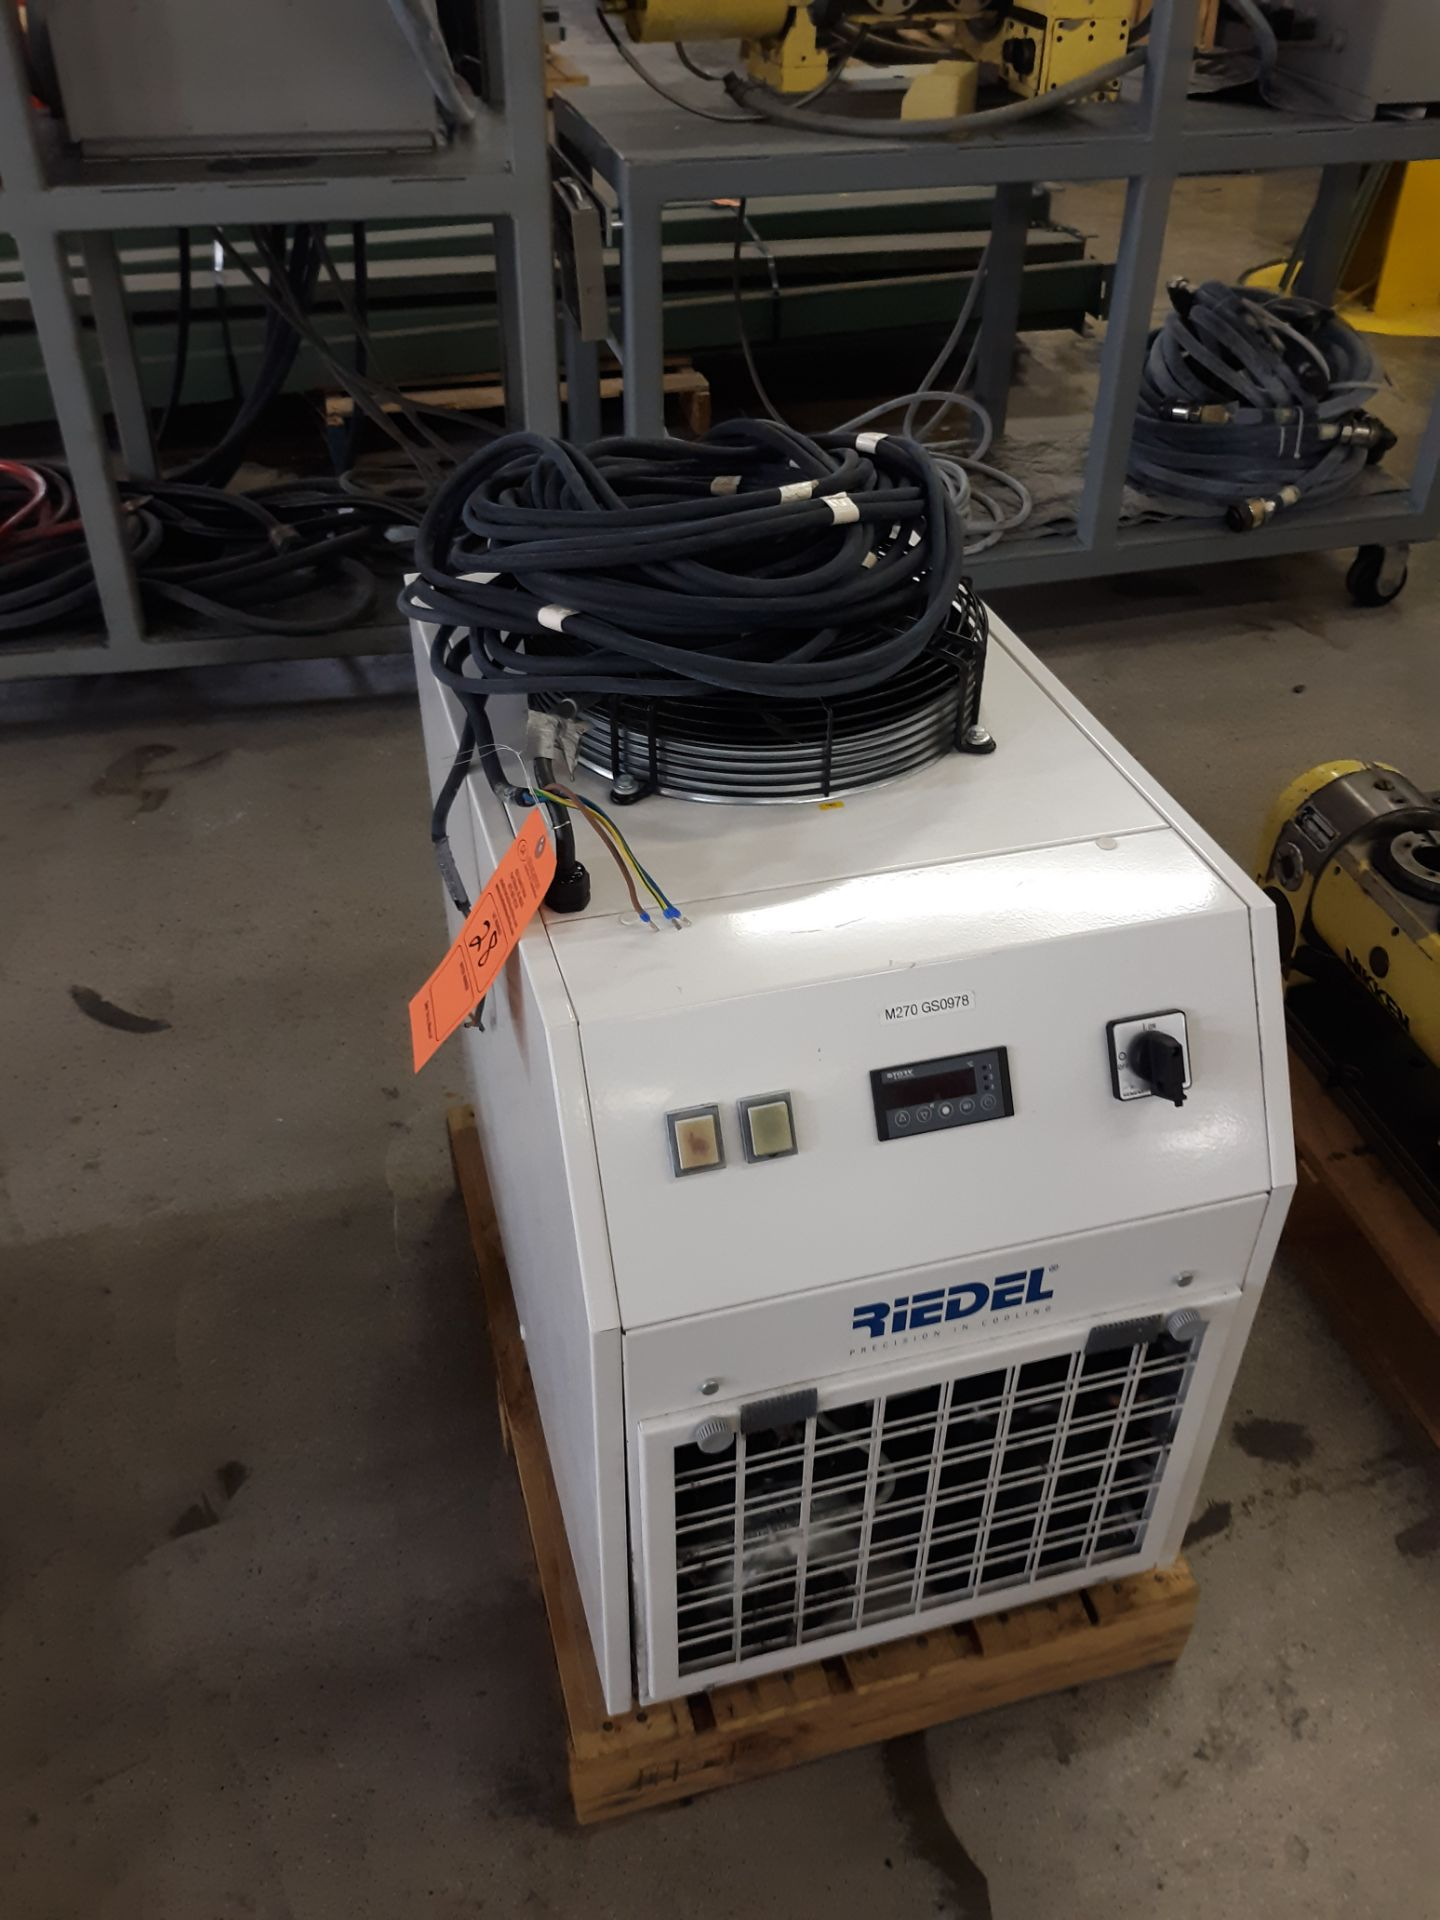 Lot 28 - RIEDEL AIR-COOLED RECIRCULATING CHILLER: RIGGING FEE: $10